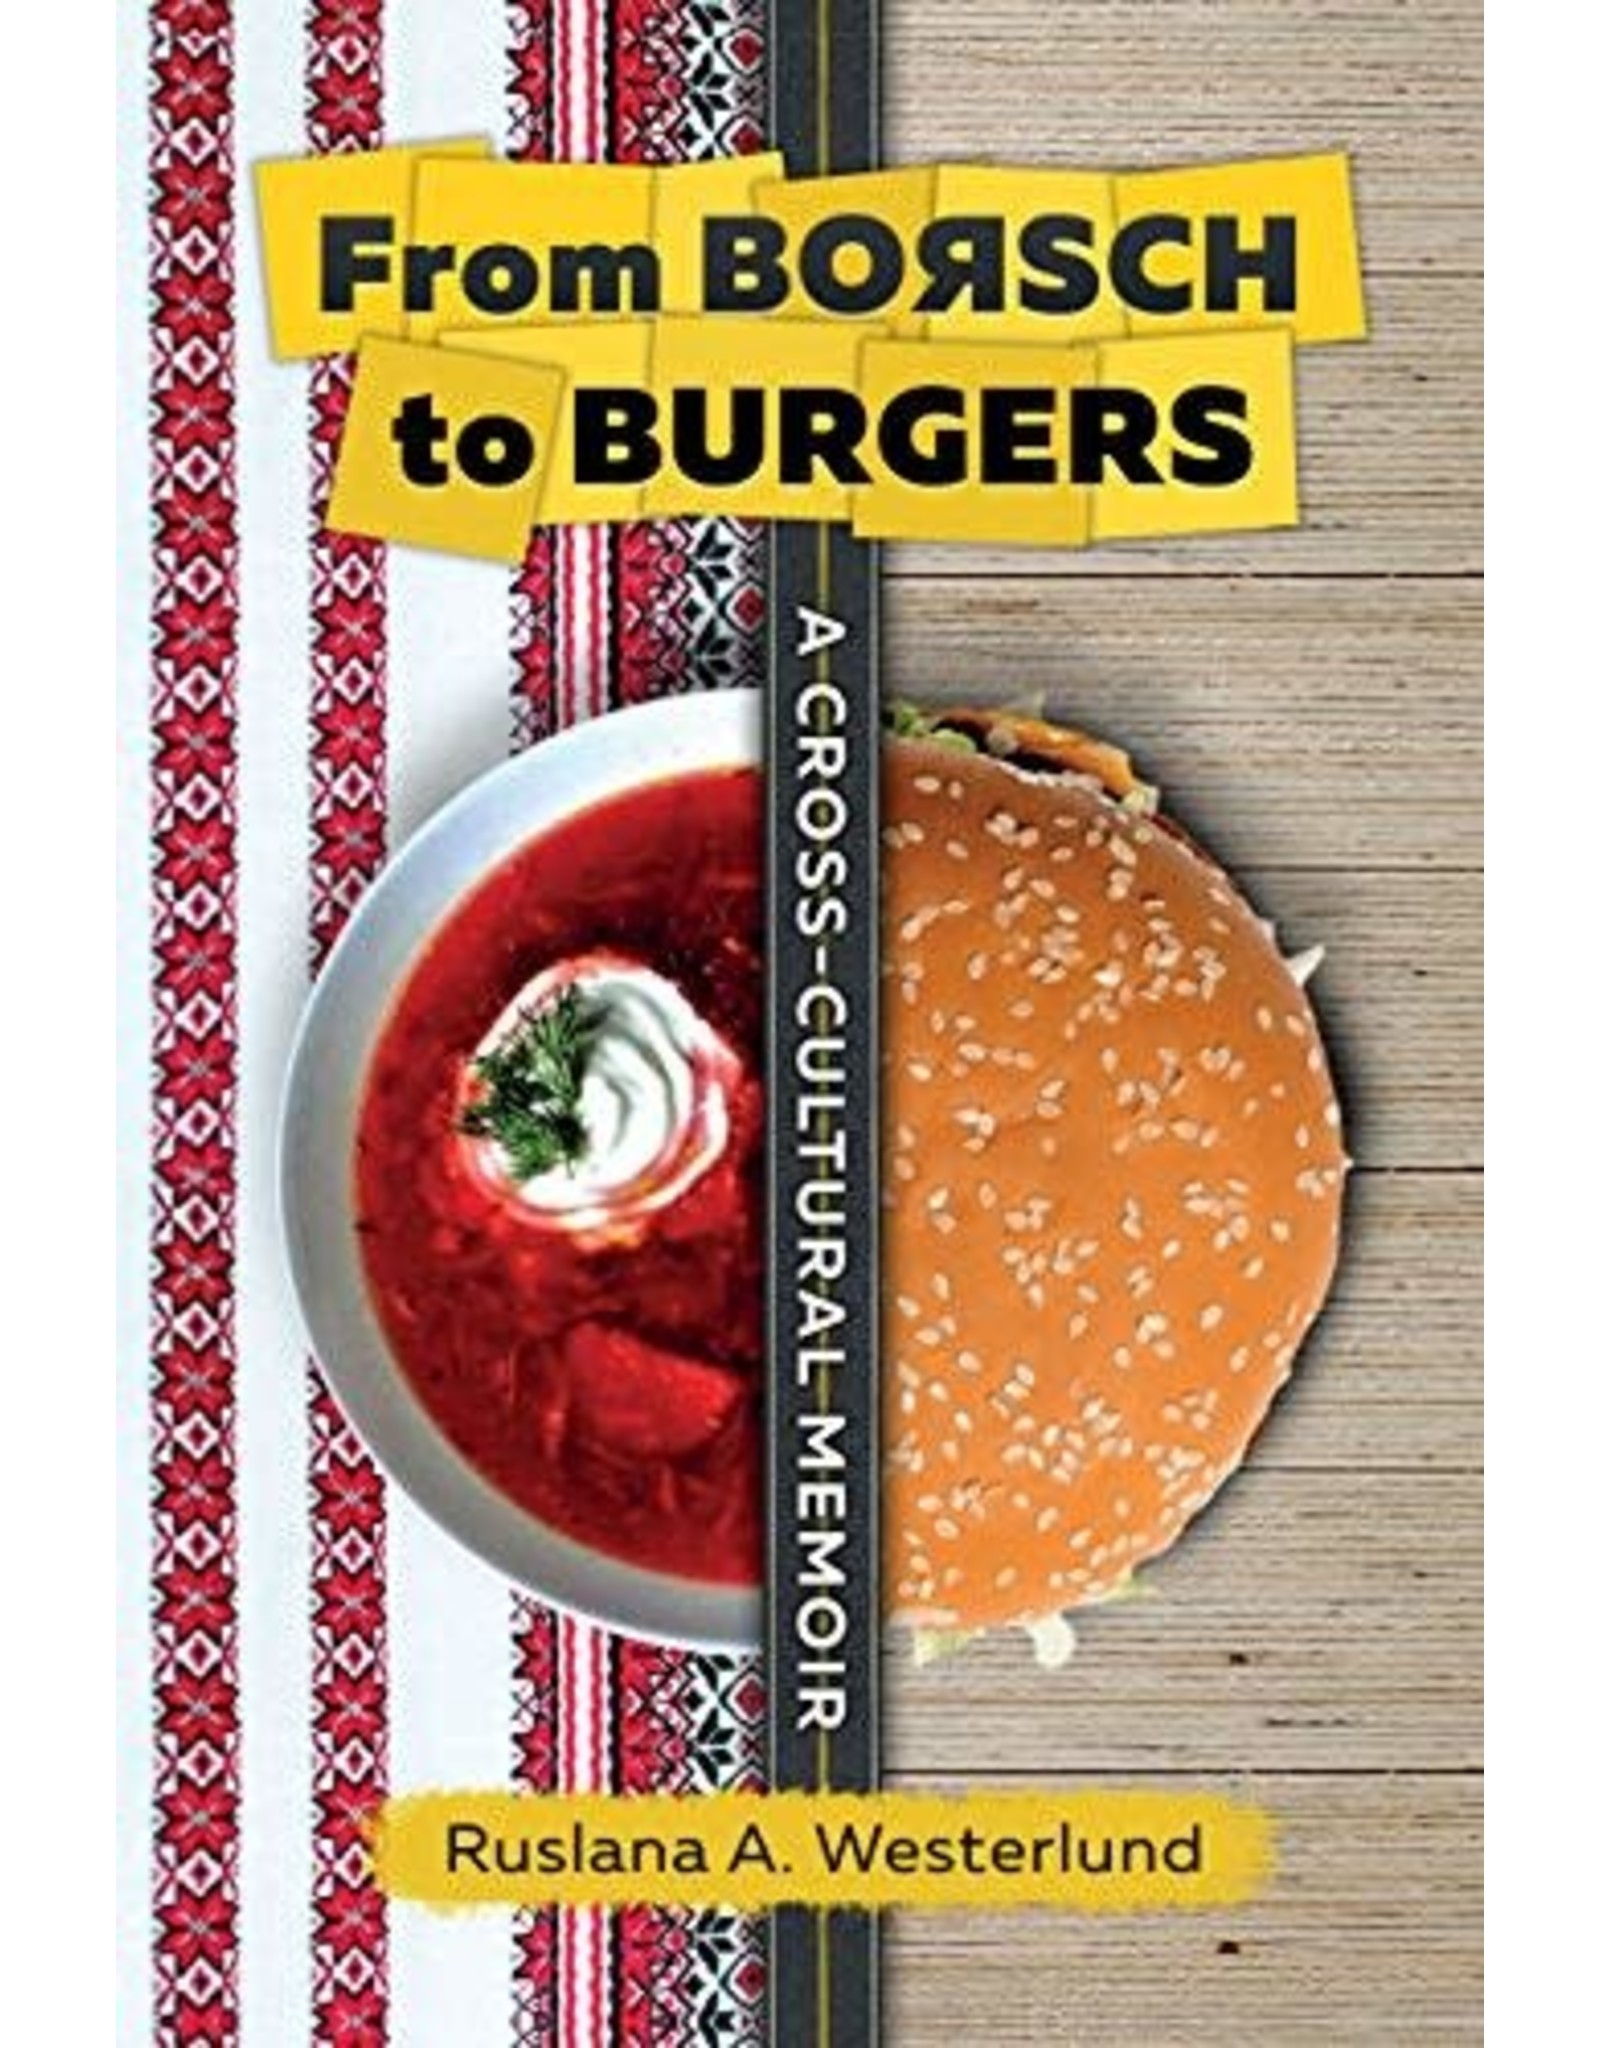 From Borsch to Burgers